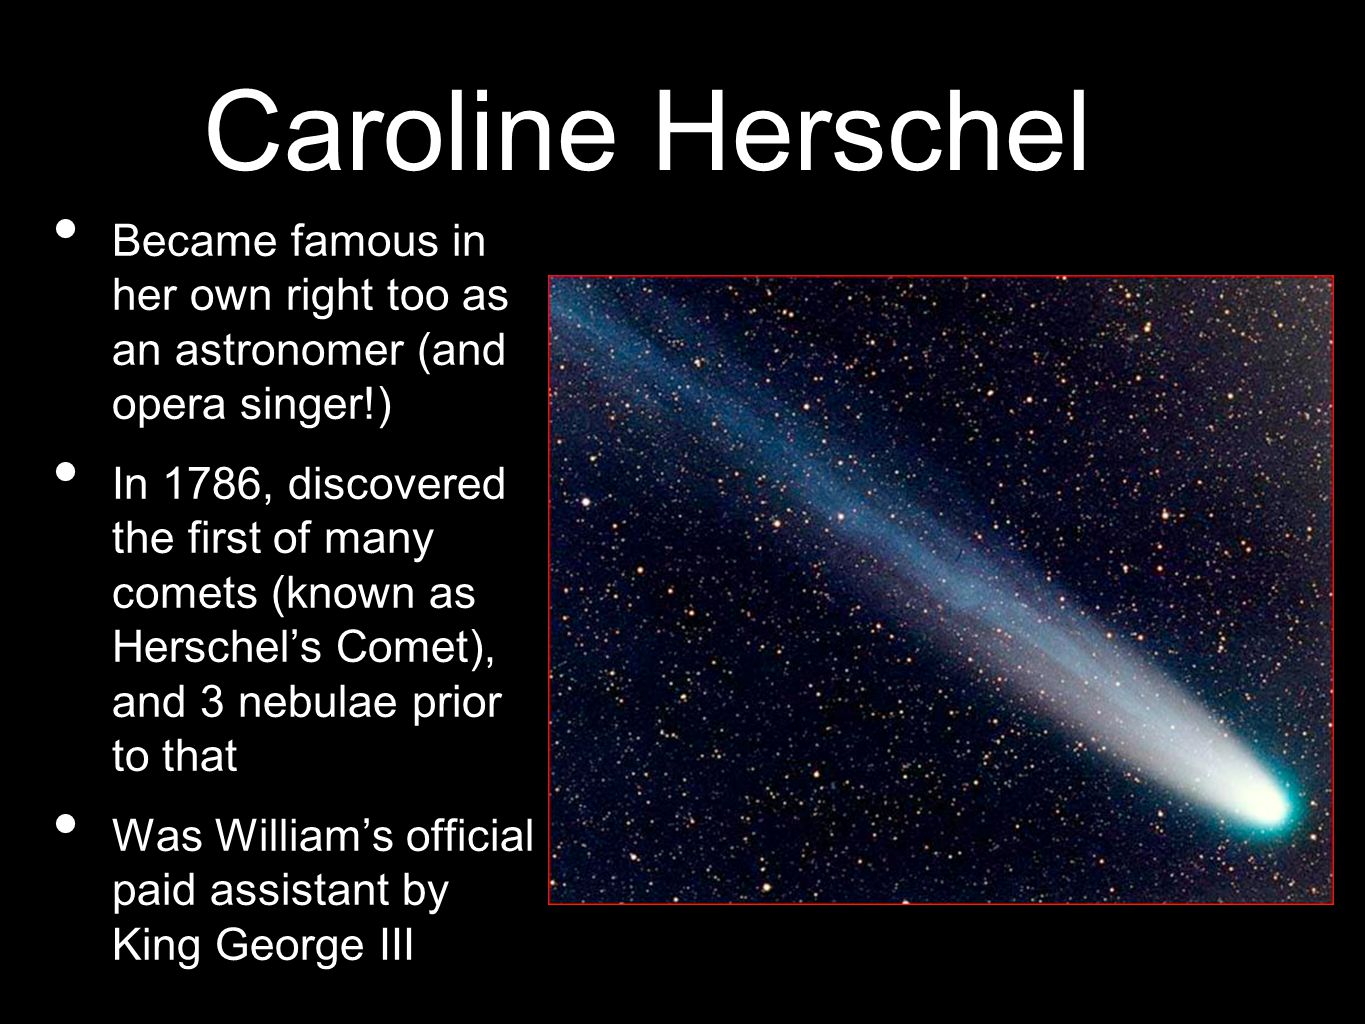 Caroline Herschel Became famous in her own right too as an astronomer (and opera singer!) In 1786, discovered the first of many comets (known as Herschel's Comet), and 3 nebulae prior to that Was William's official paid assistant by King George III